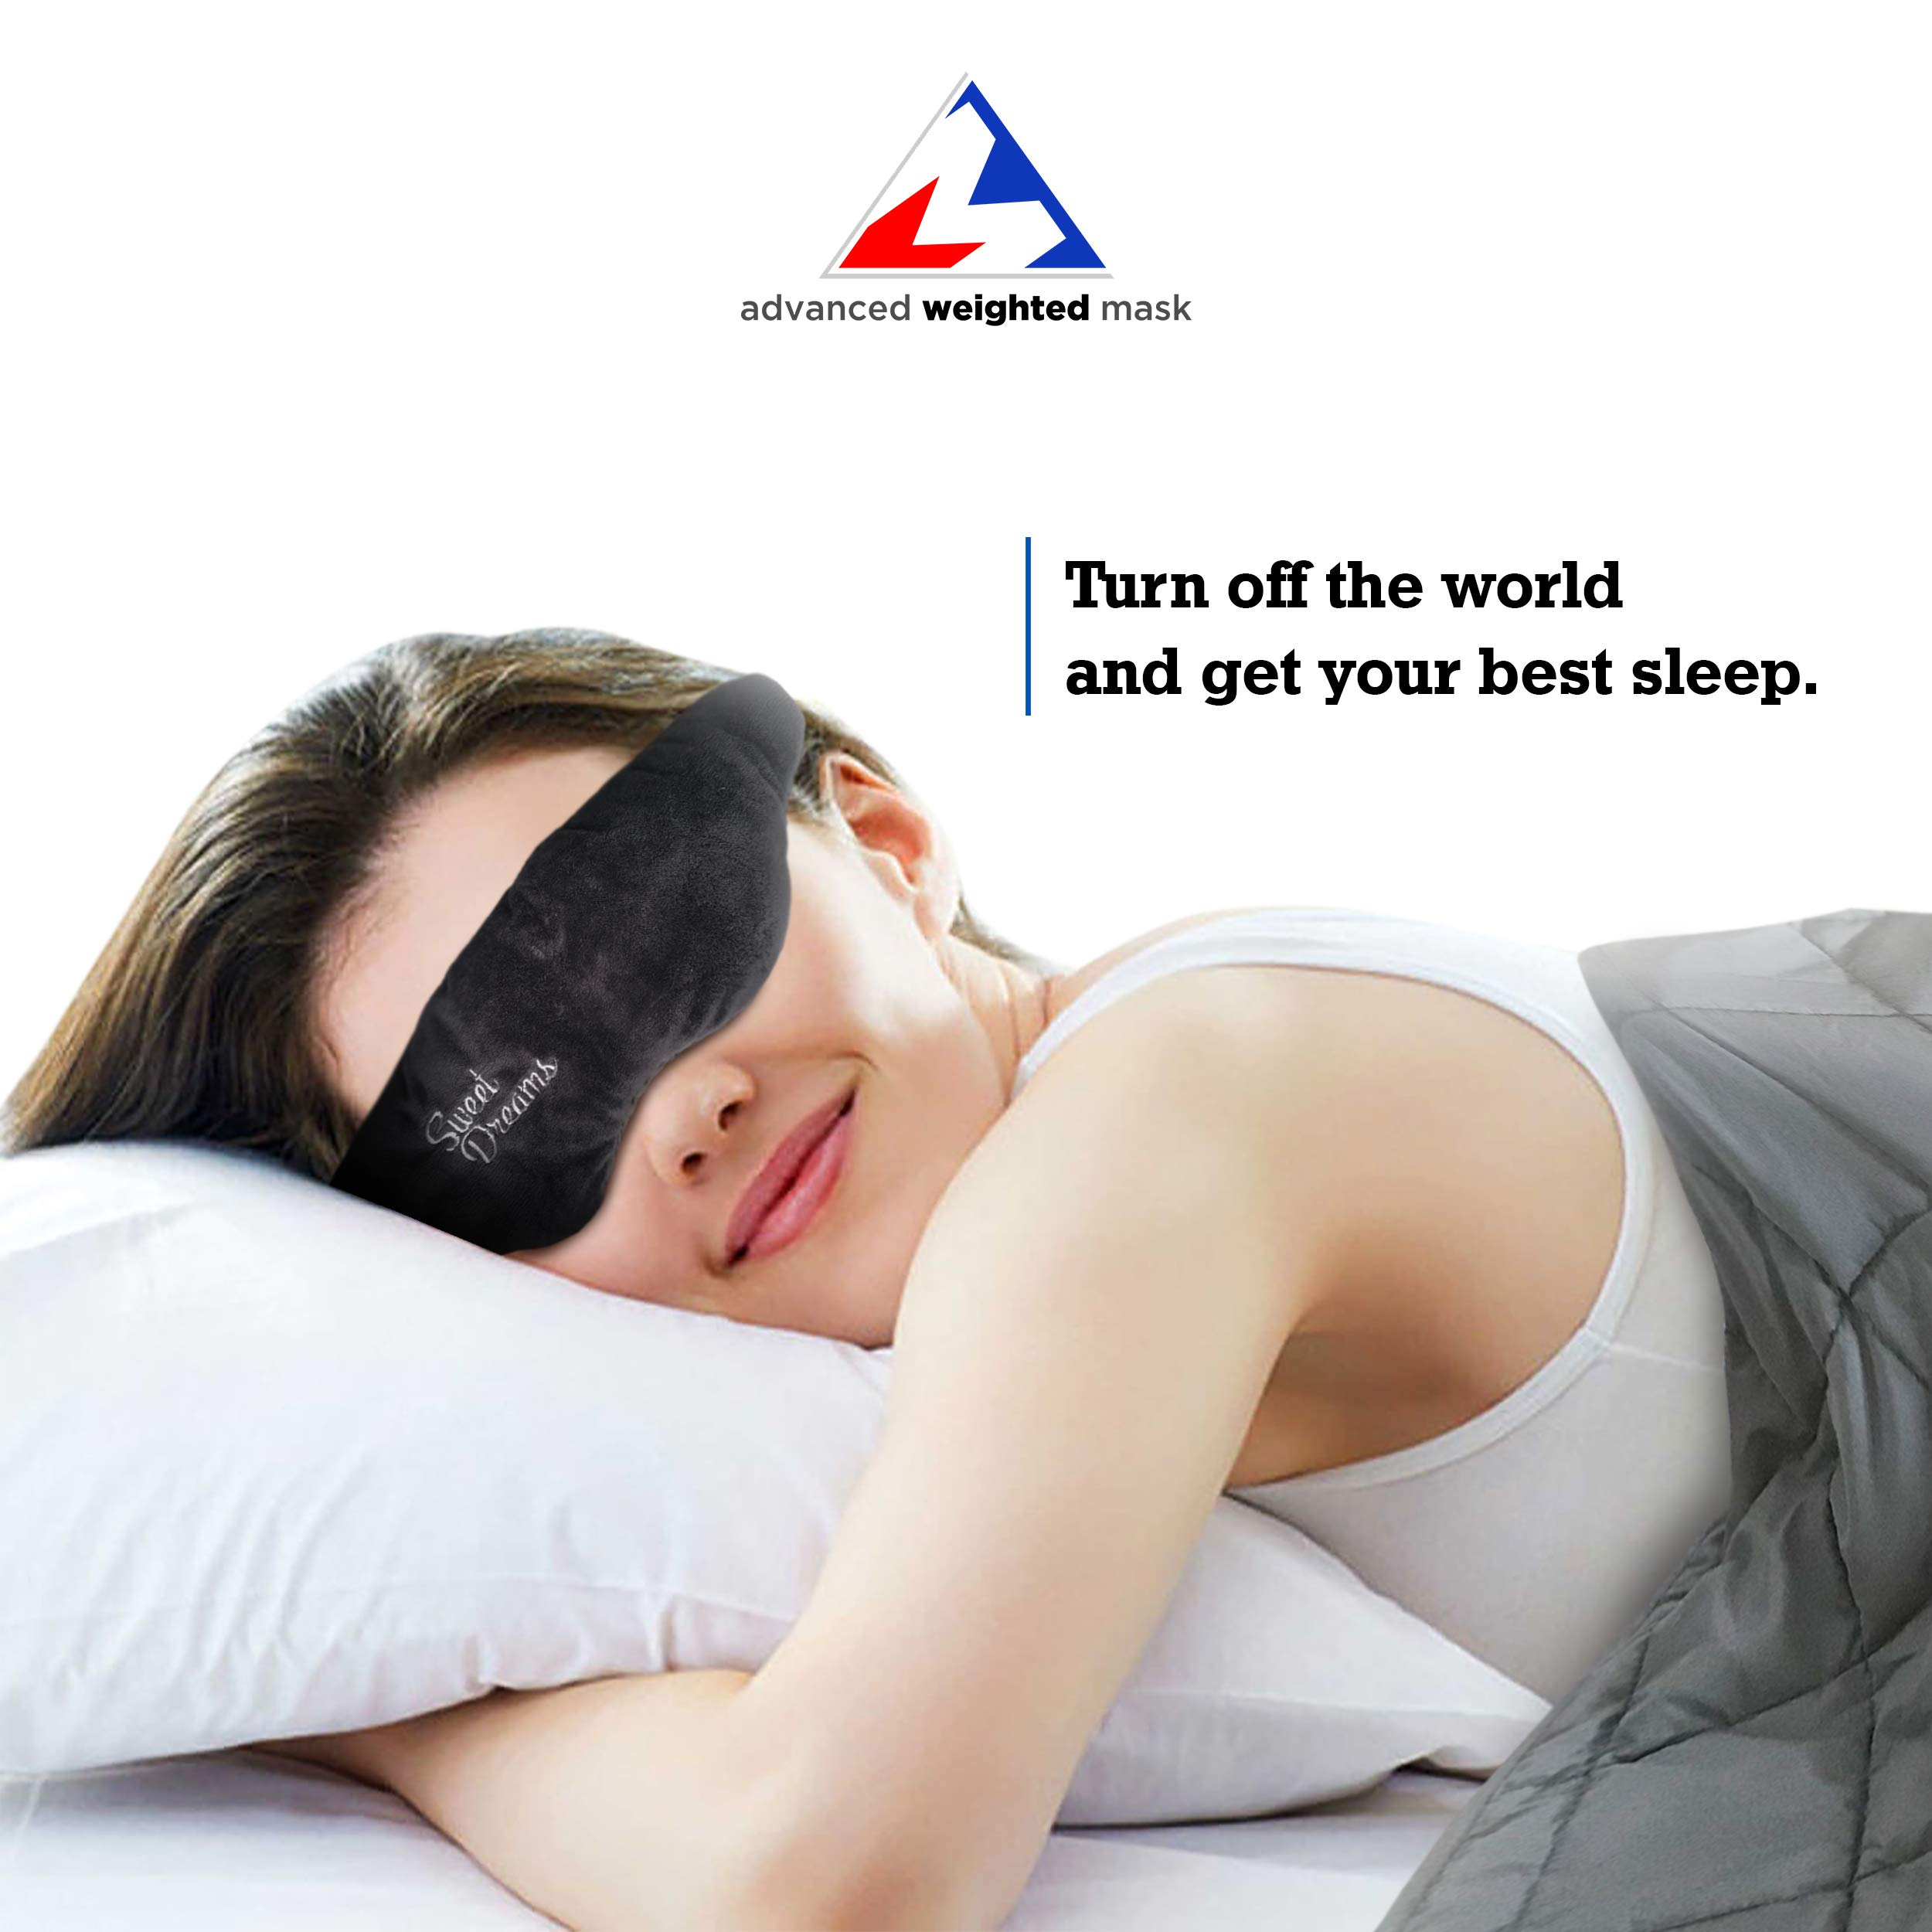 Advanced Weighted Sleep Mask with Adjustable Head Strap - Double-Sided Light-Proof Weighted Sleeping Mask - Induce Faster and Deeper Sleep - Comfortable Design - Perfect for Anxiety & Insomnia (Black)